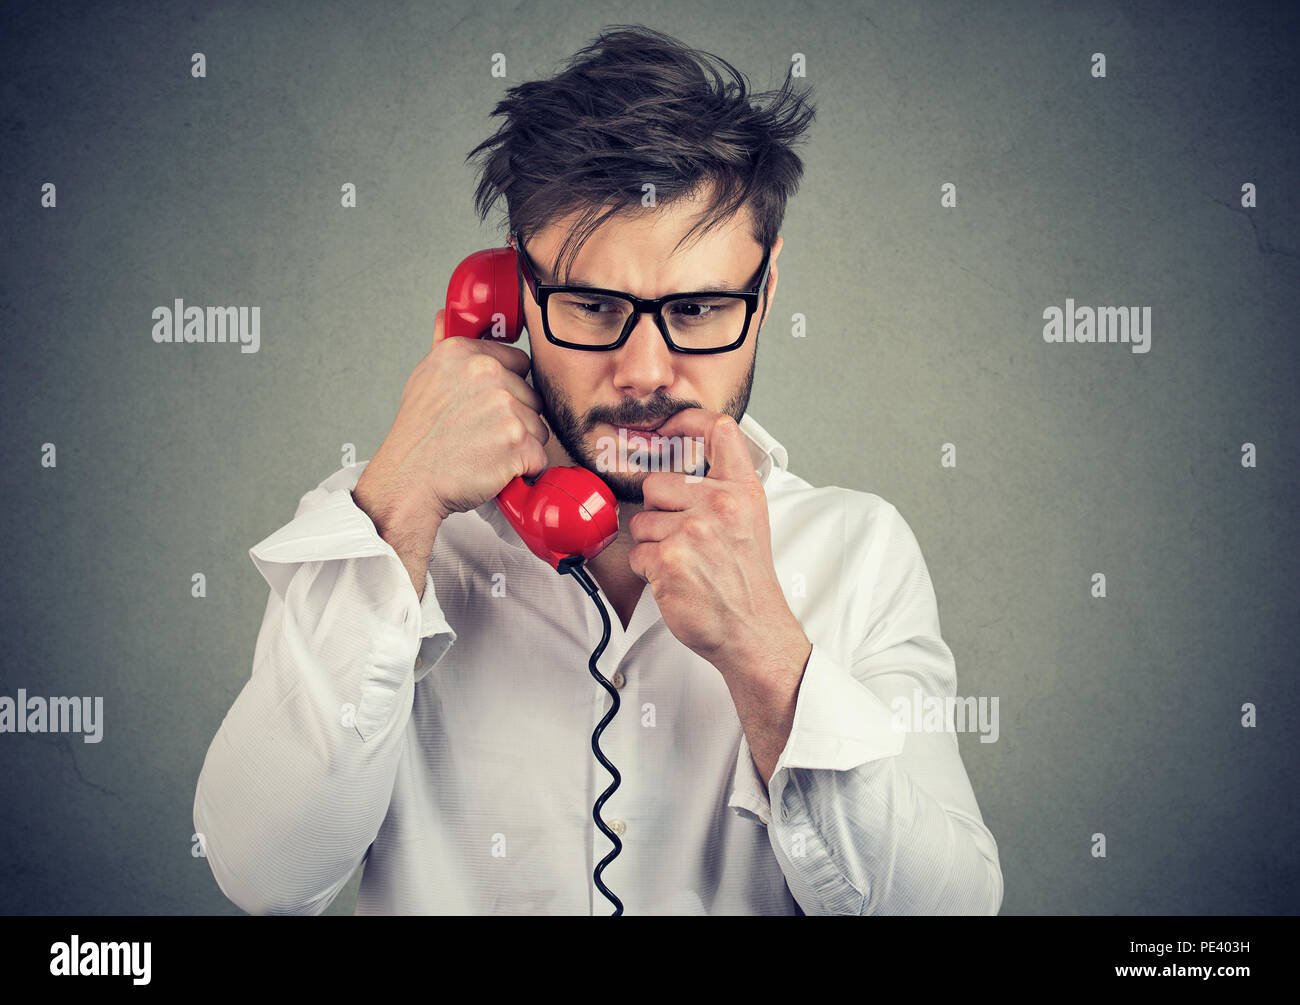 Young frustrated man in glasses having call on telephone and biting nail looking nervous while speaking on gray background - Stock Image